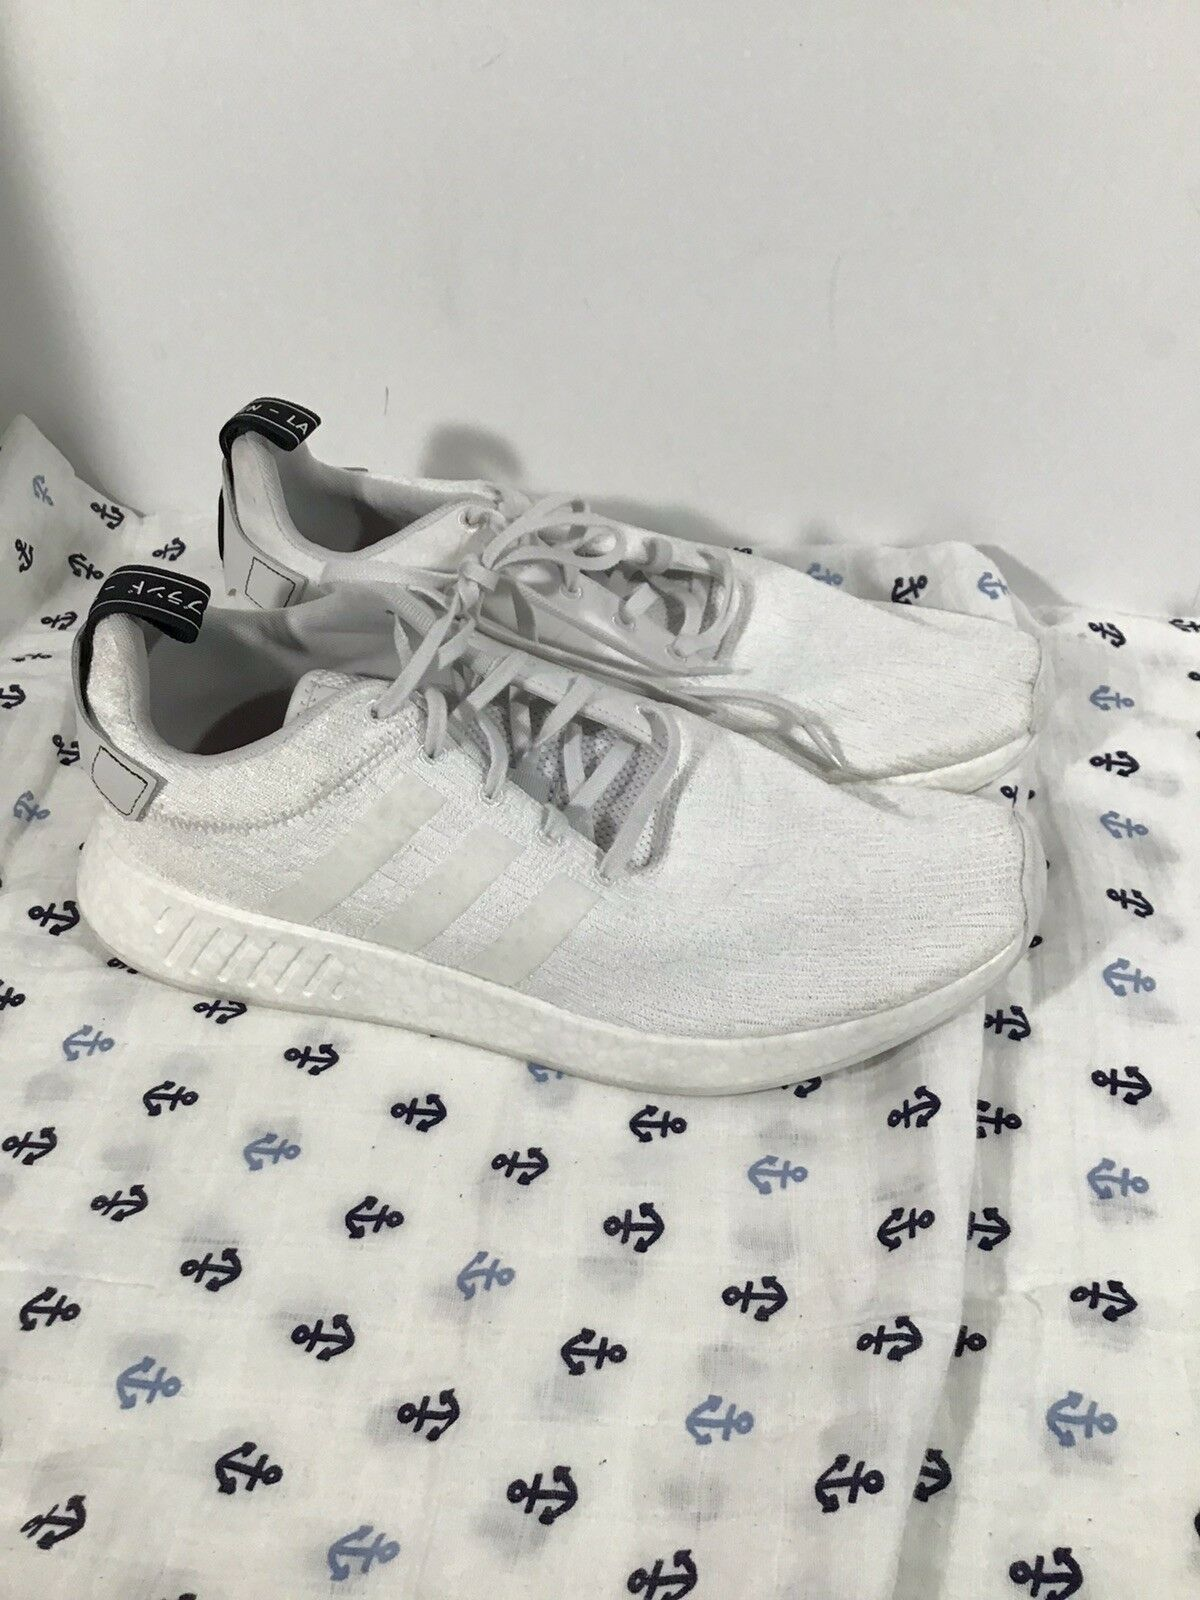 Men's Adidas NMD R1 Trace White Boost Running Sneaker Size 13